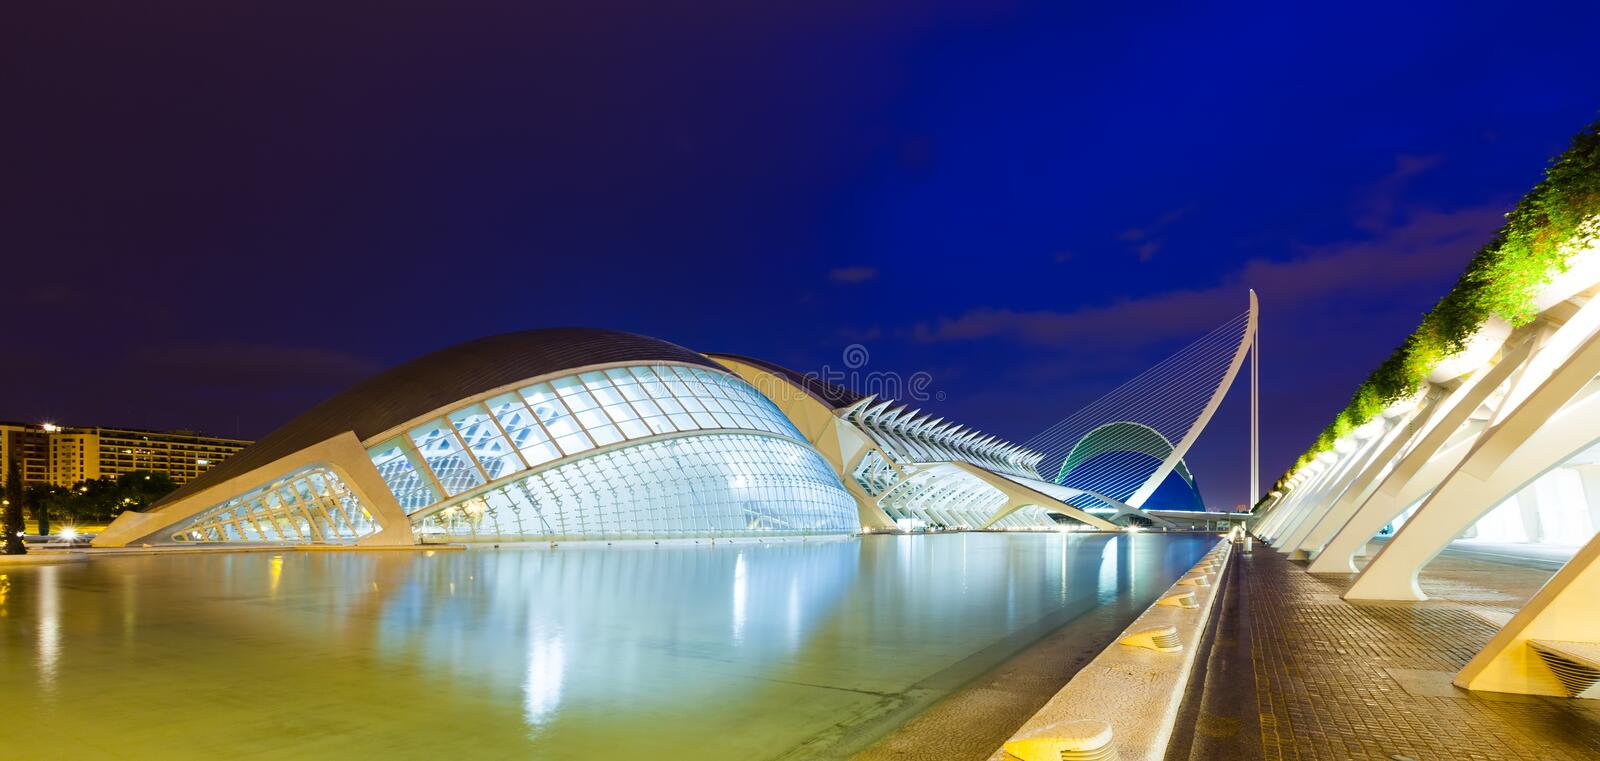 City of Arts and Sciences in Valencia, Spain royalty free stock images